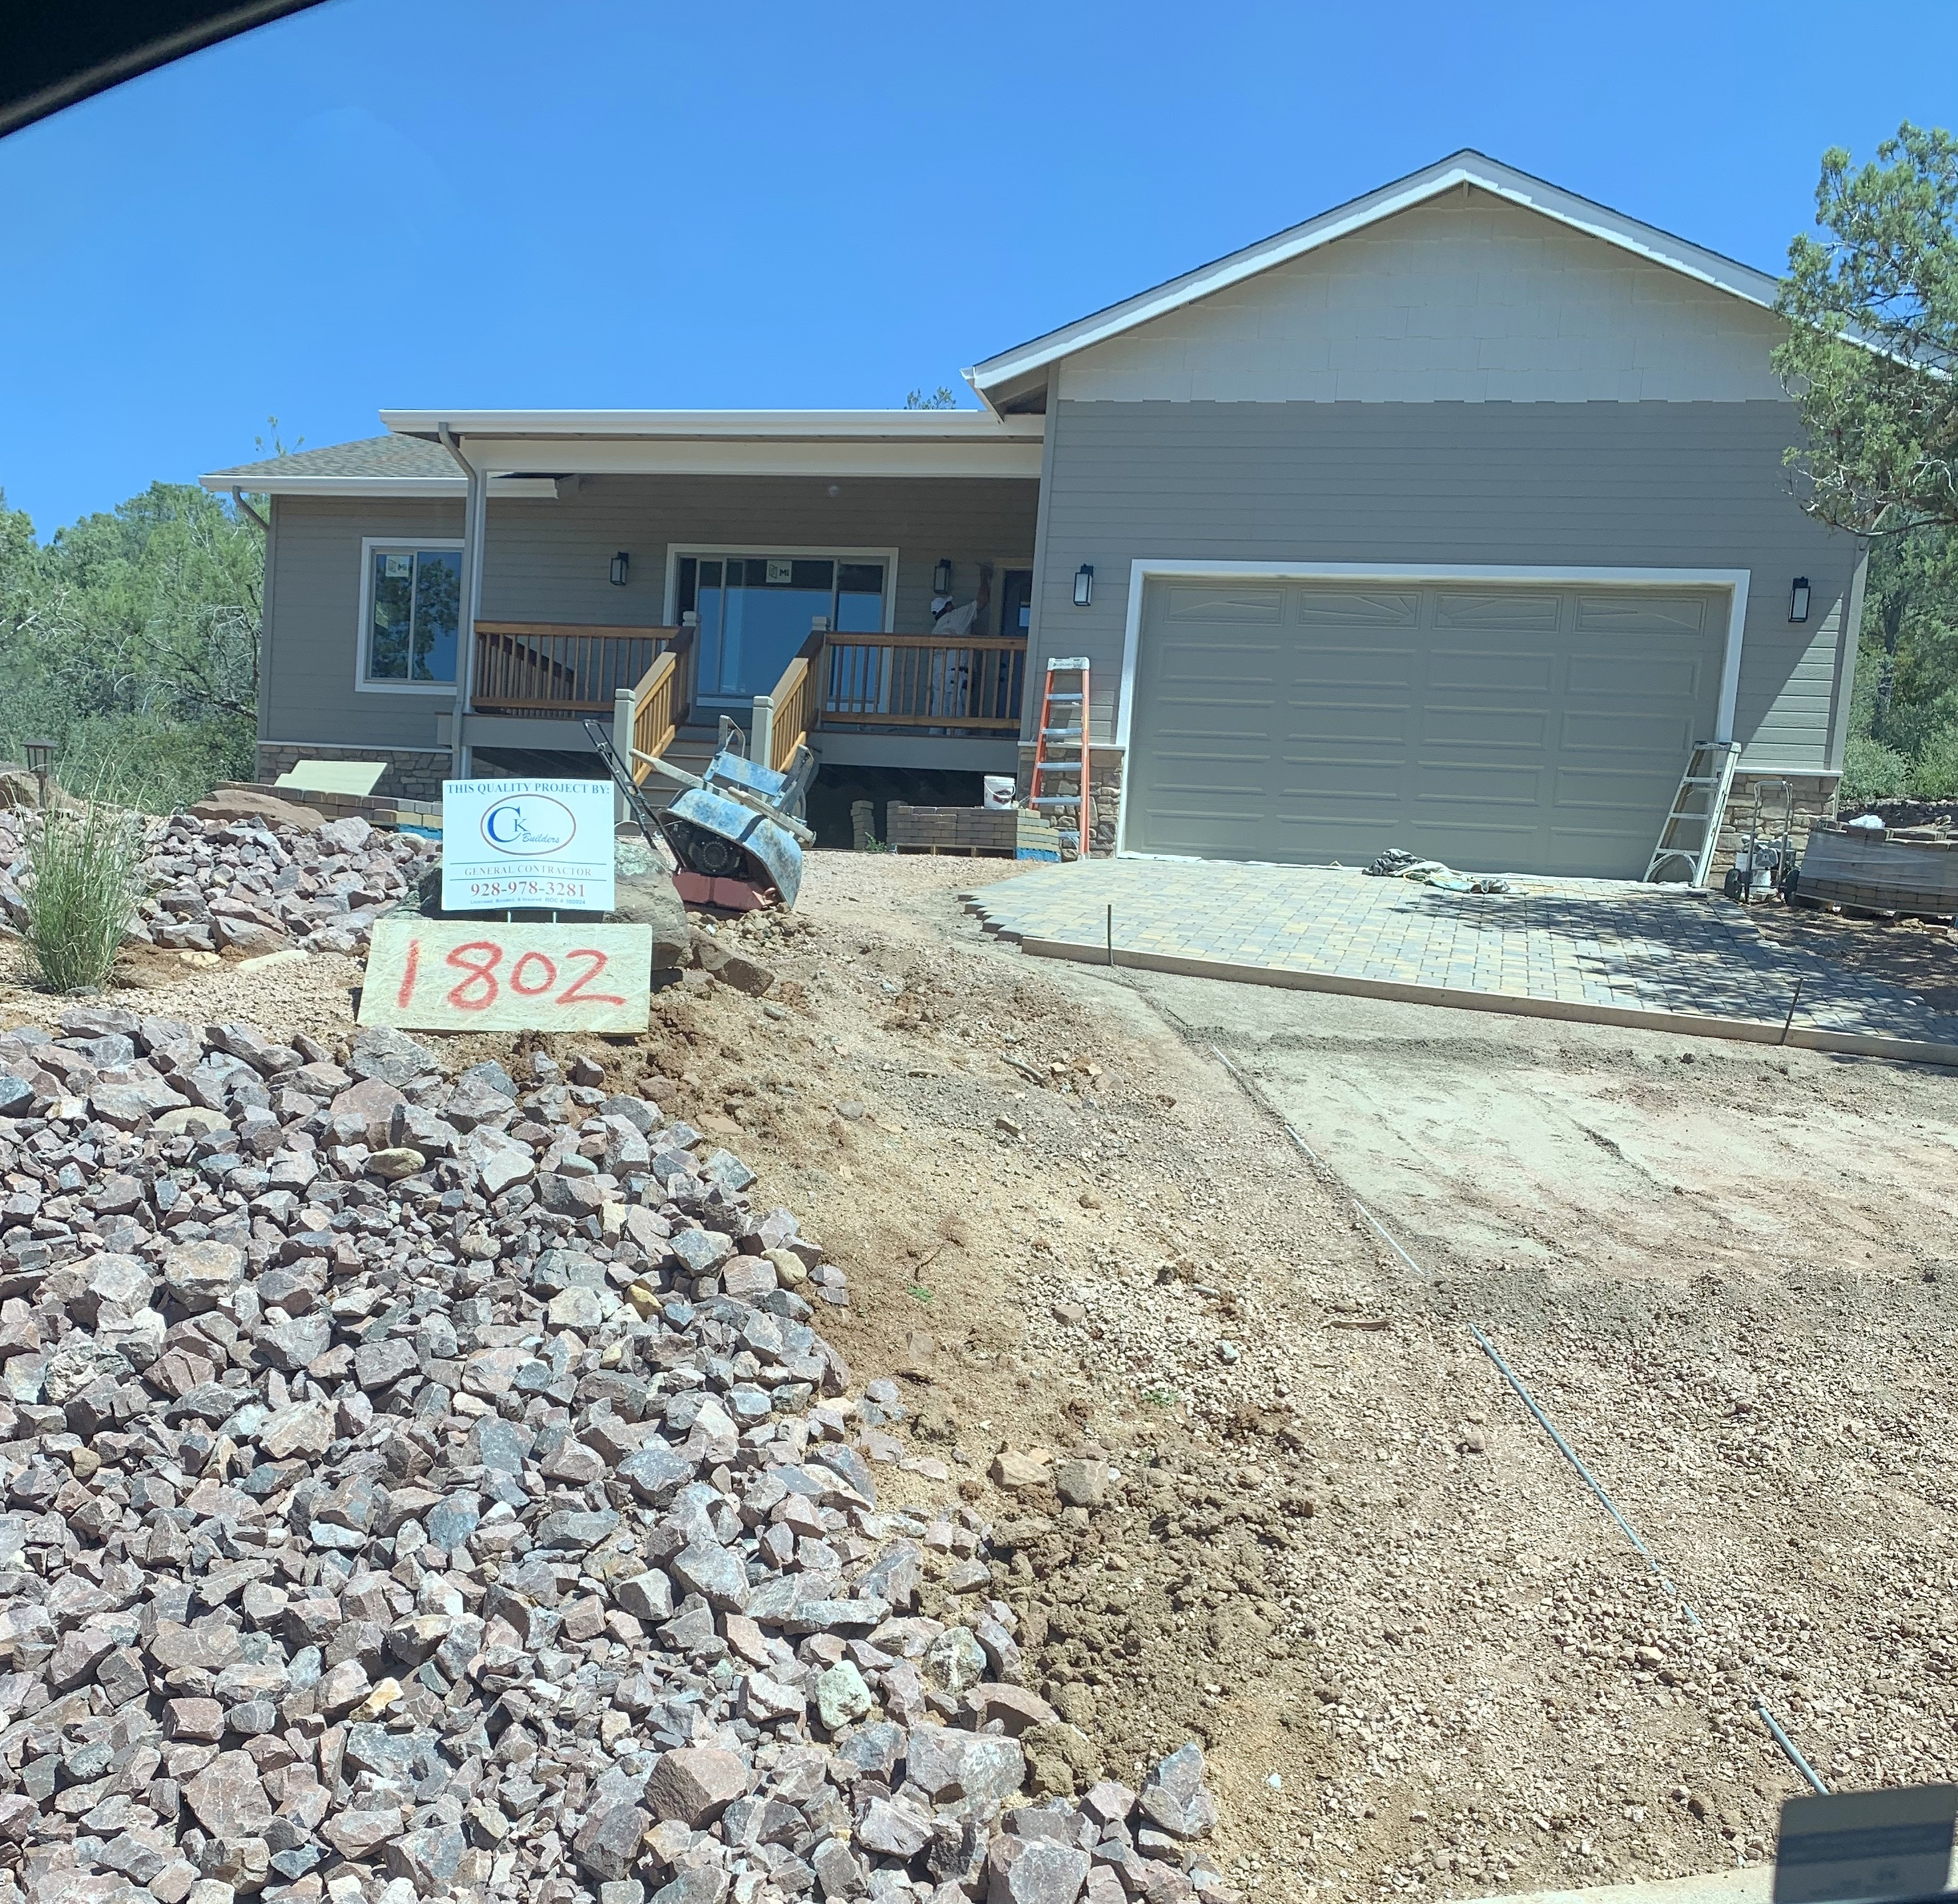 3 Bedrooms / 2 Bathrooms - Est. $2,495.00 / Month* for rent in Payson, AZ